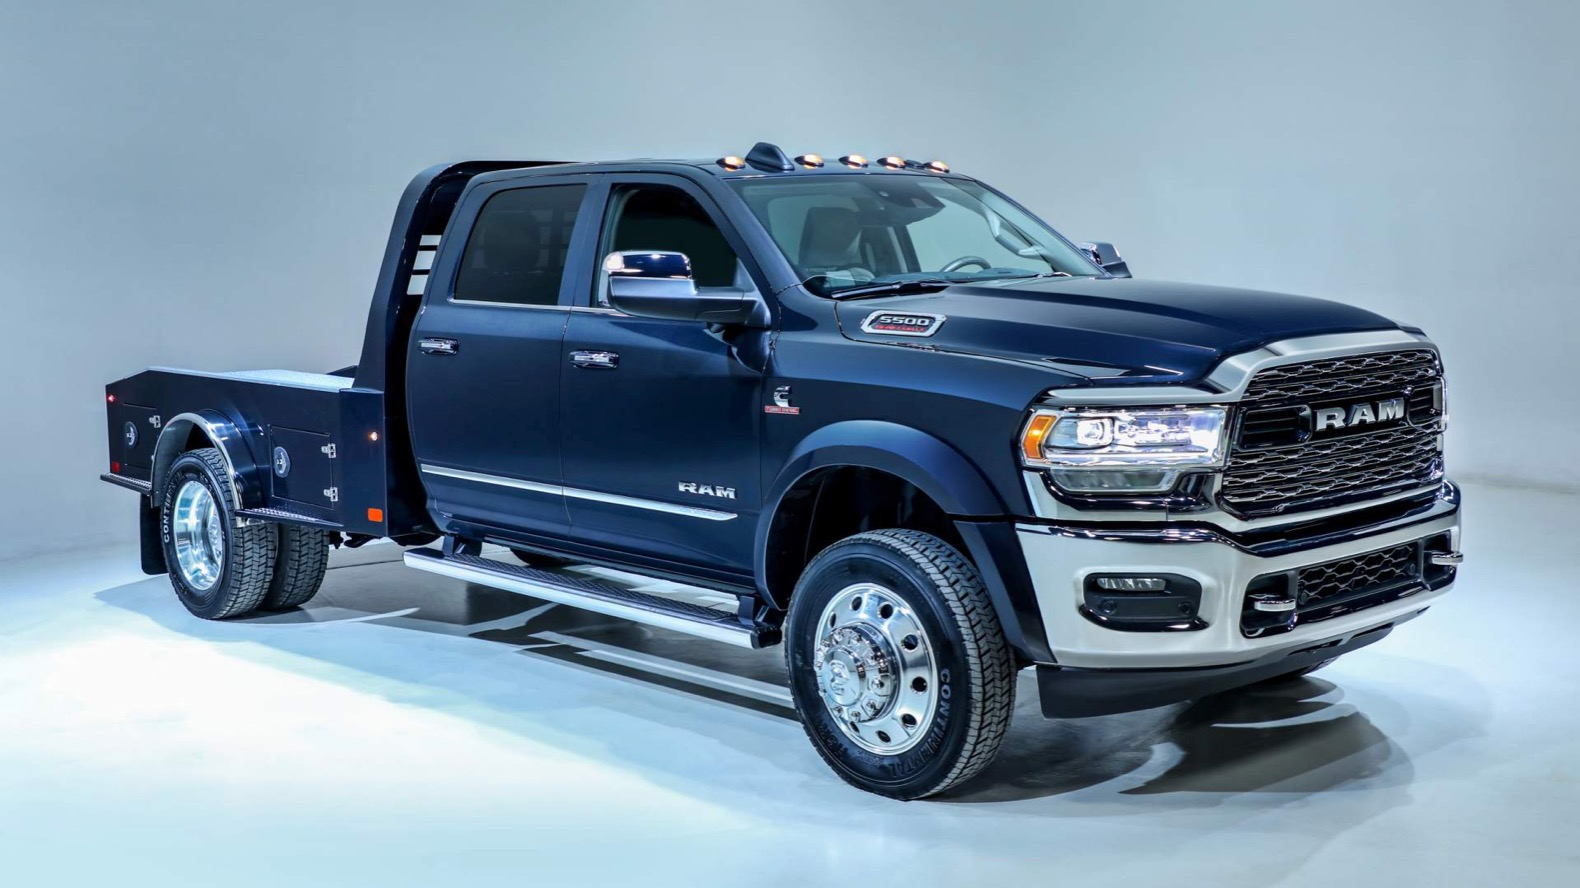 Dodge Ram 3500 Diesel >> 2019 Ram Chassis Cab can tow up to 35,220 pounds | The Torque Report